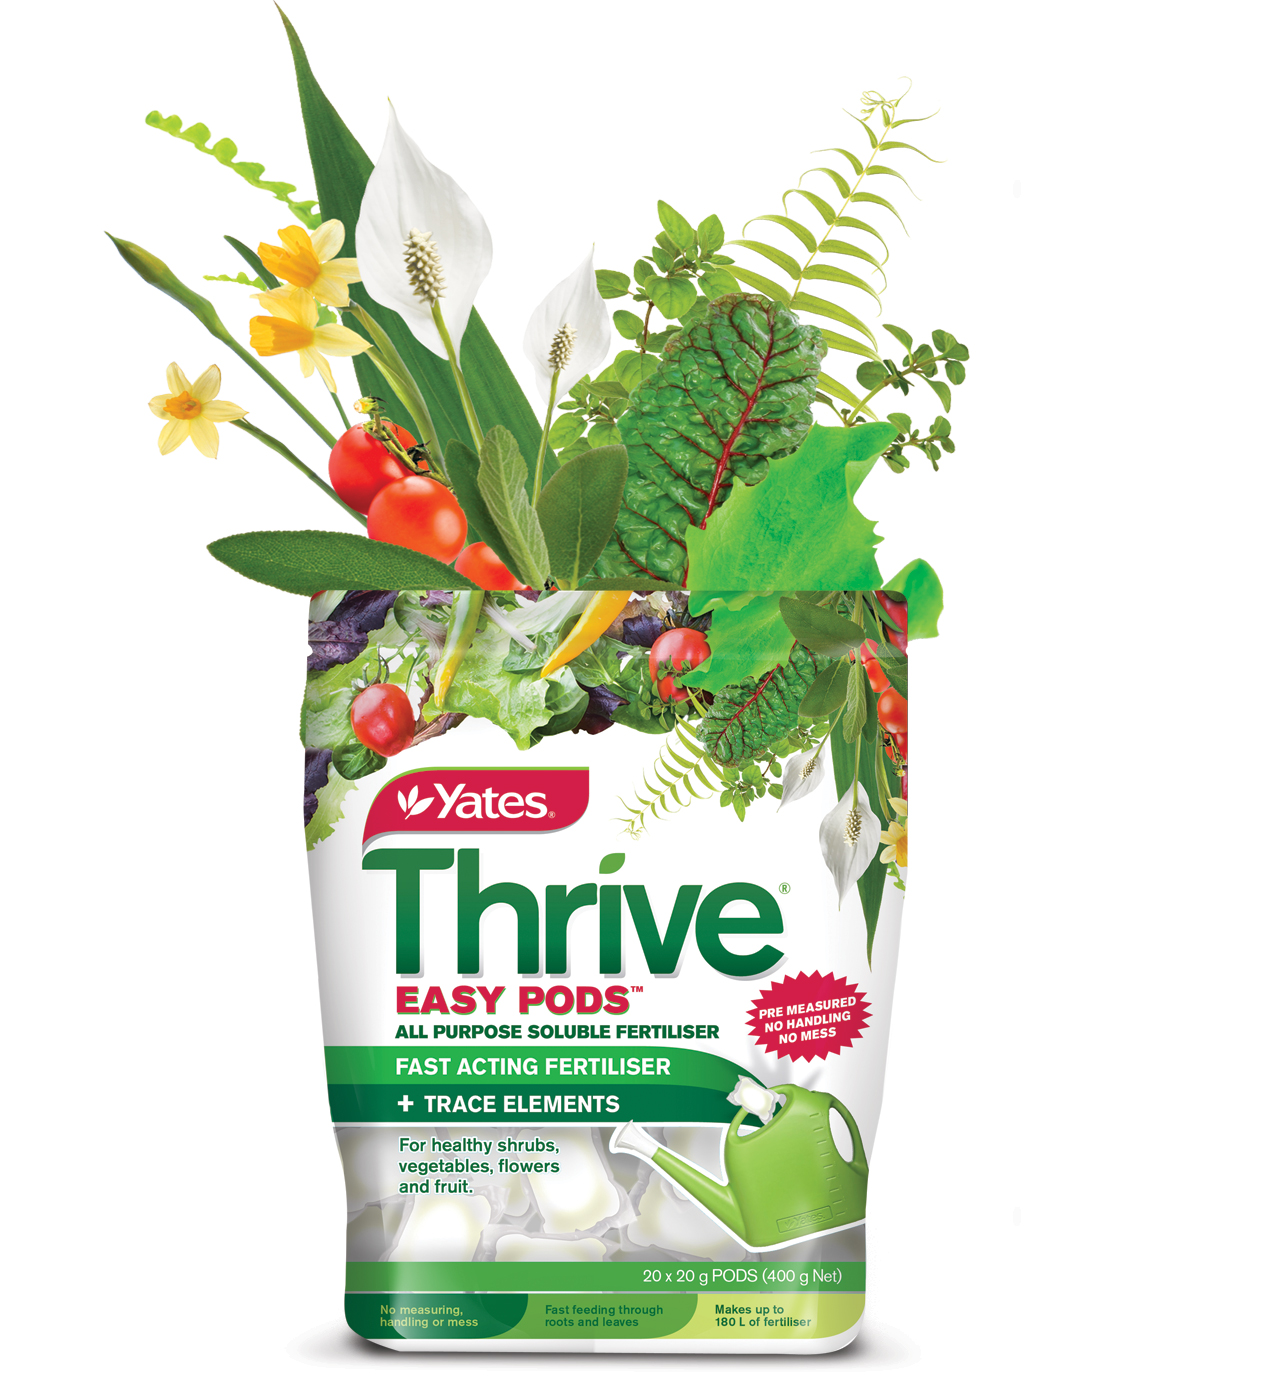 Yates thrive packaging by Echo Design